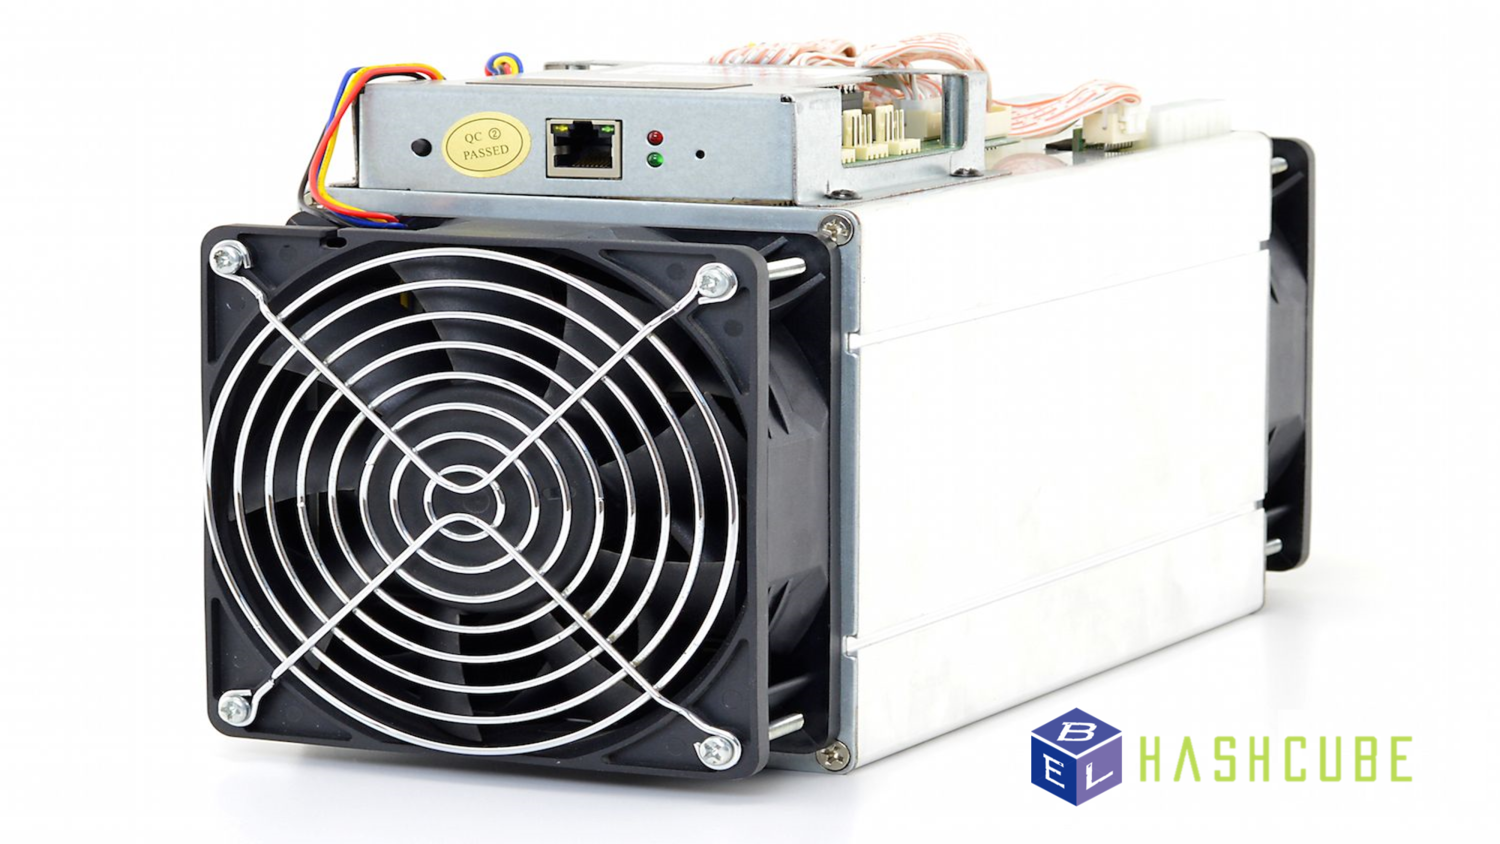 Antminer S7 4.7TH/s 28nm ASIC Bitcoin Miner